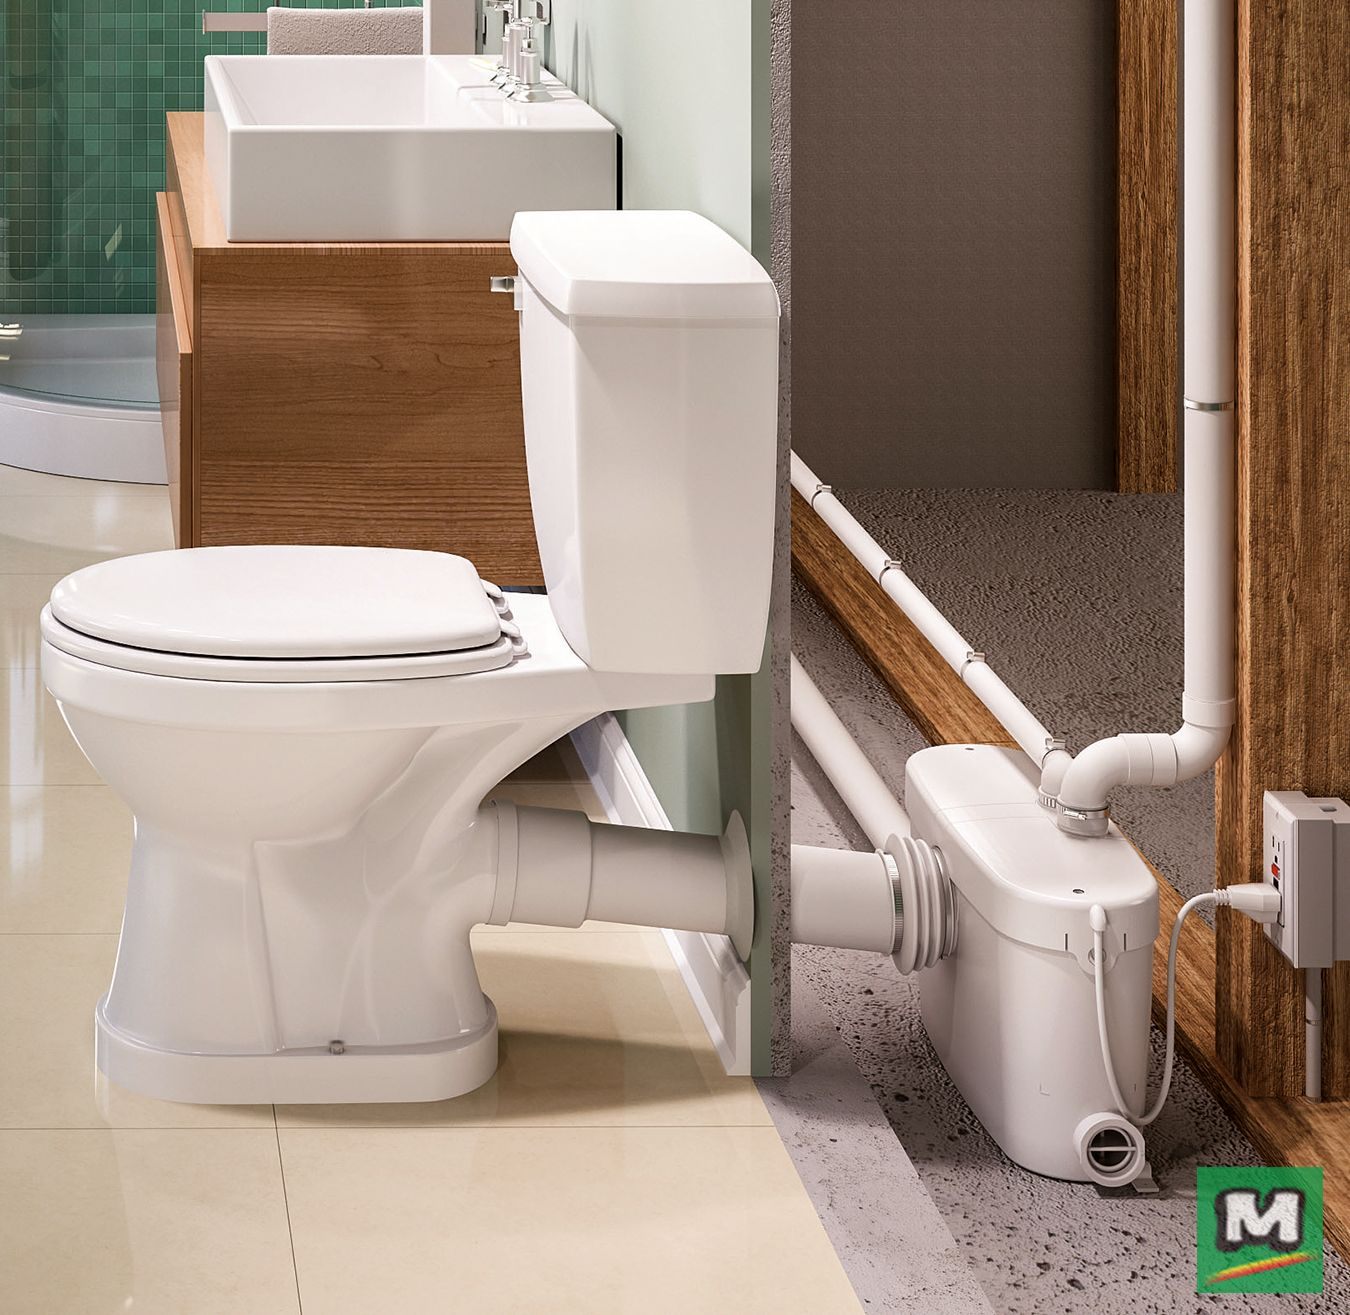 Install A Basement Bathroom Without The Need To Break Concrete The Sanipro Macer Basement Bathroom Remodeling Basement Bathroom Design Small Basement Bathroom